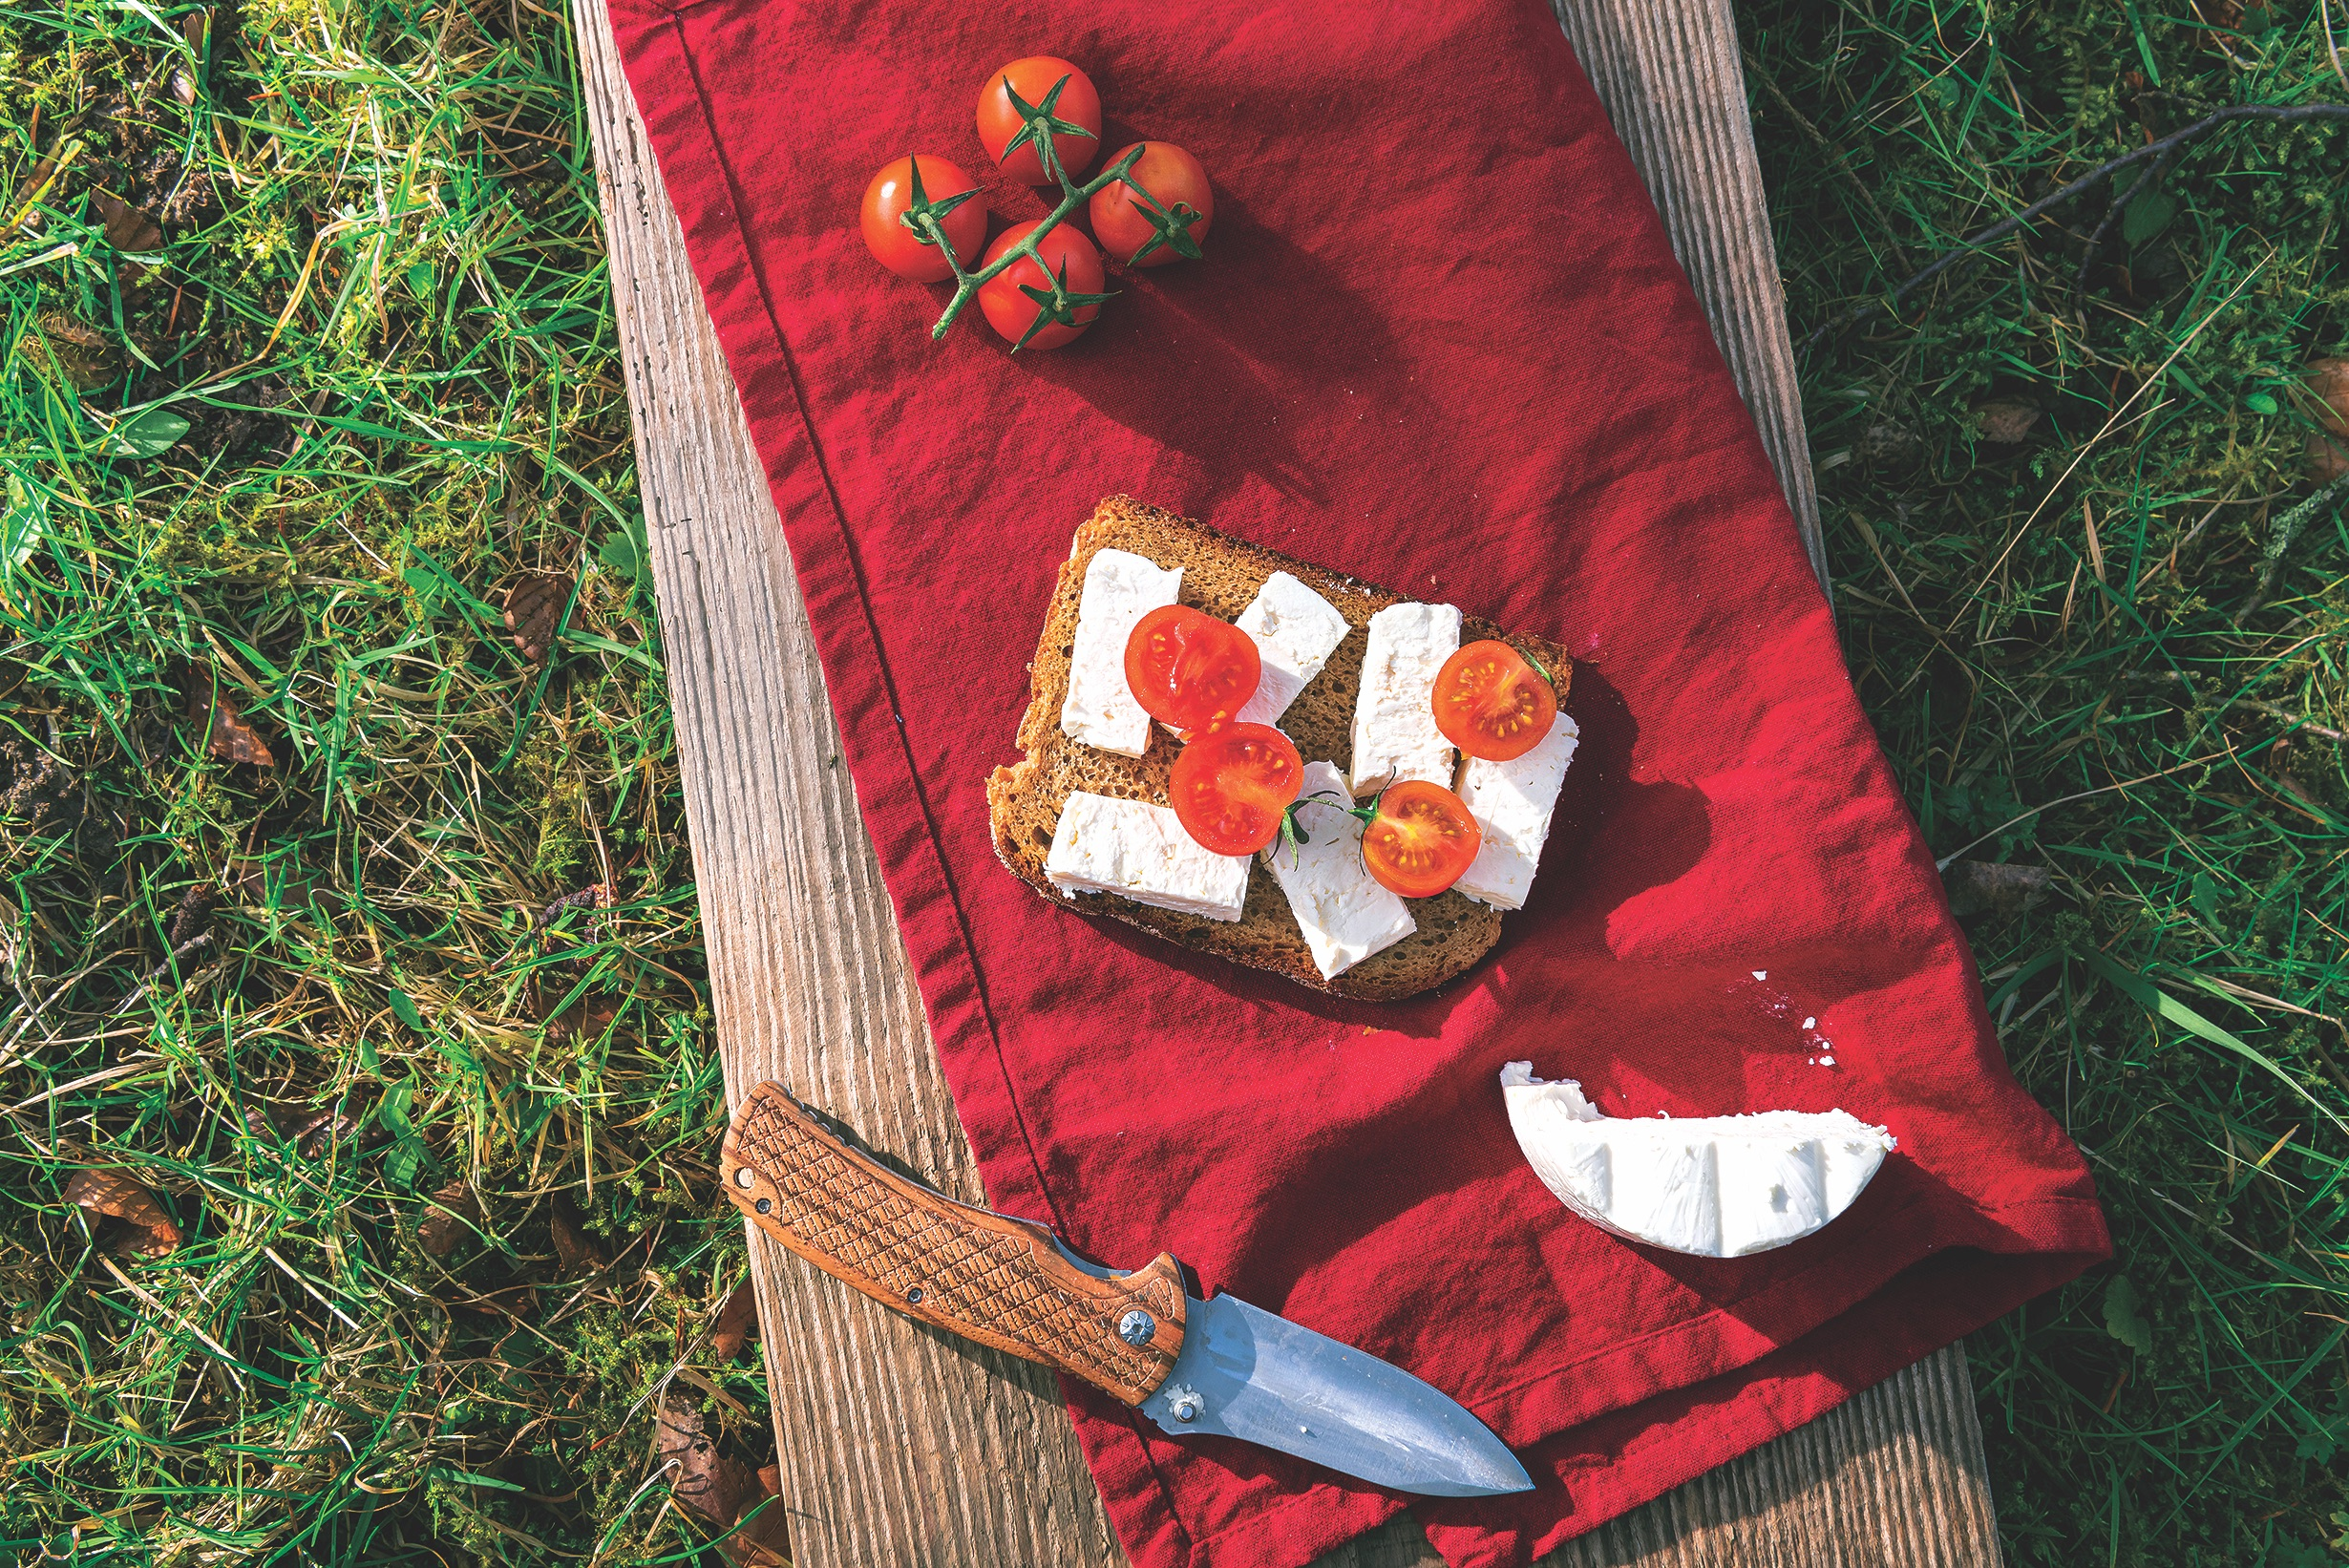 Tomatoes,and,cheese,sandwich,on,red,towel,,outdoor,,on,green